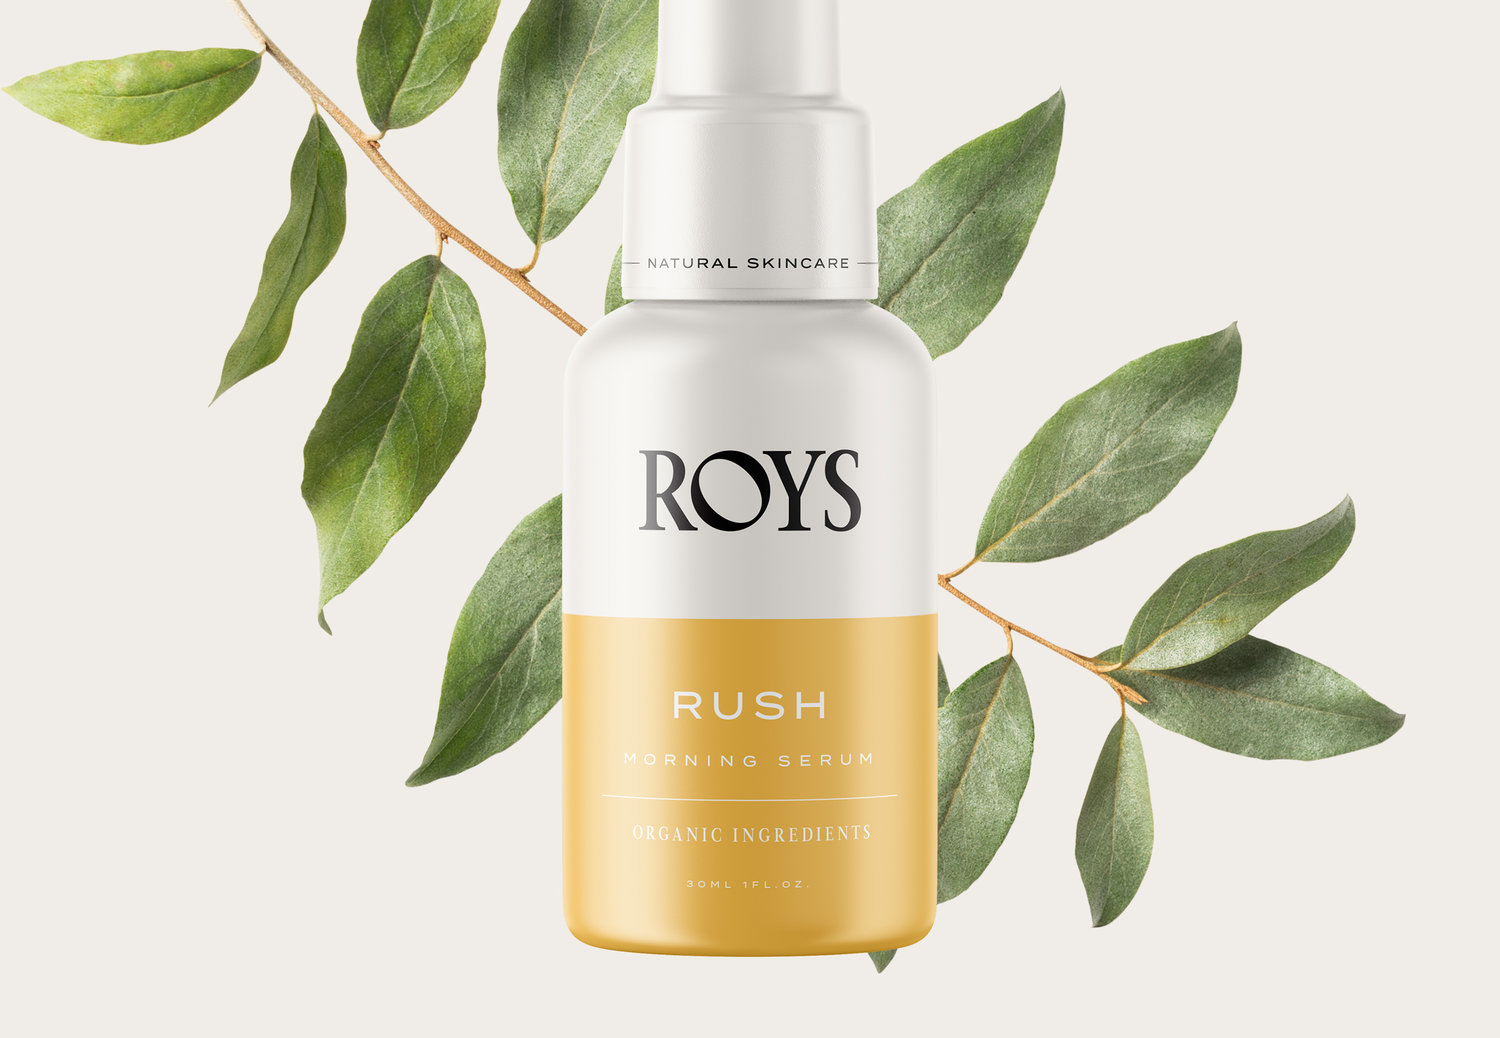 Branding and Packaging Design for Roys Natural Skincare